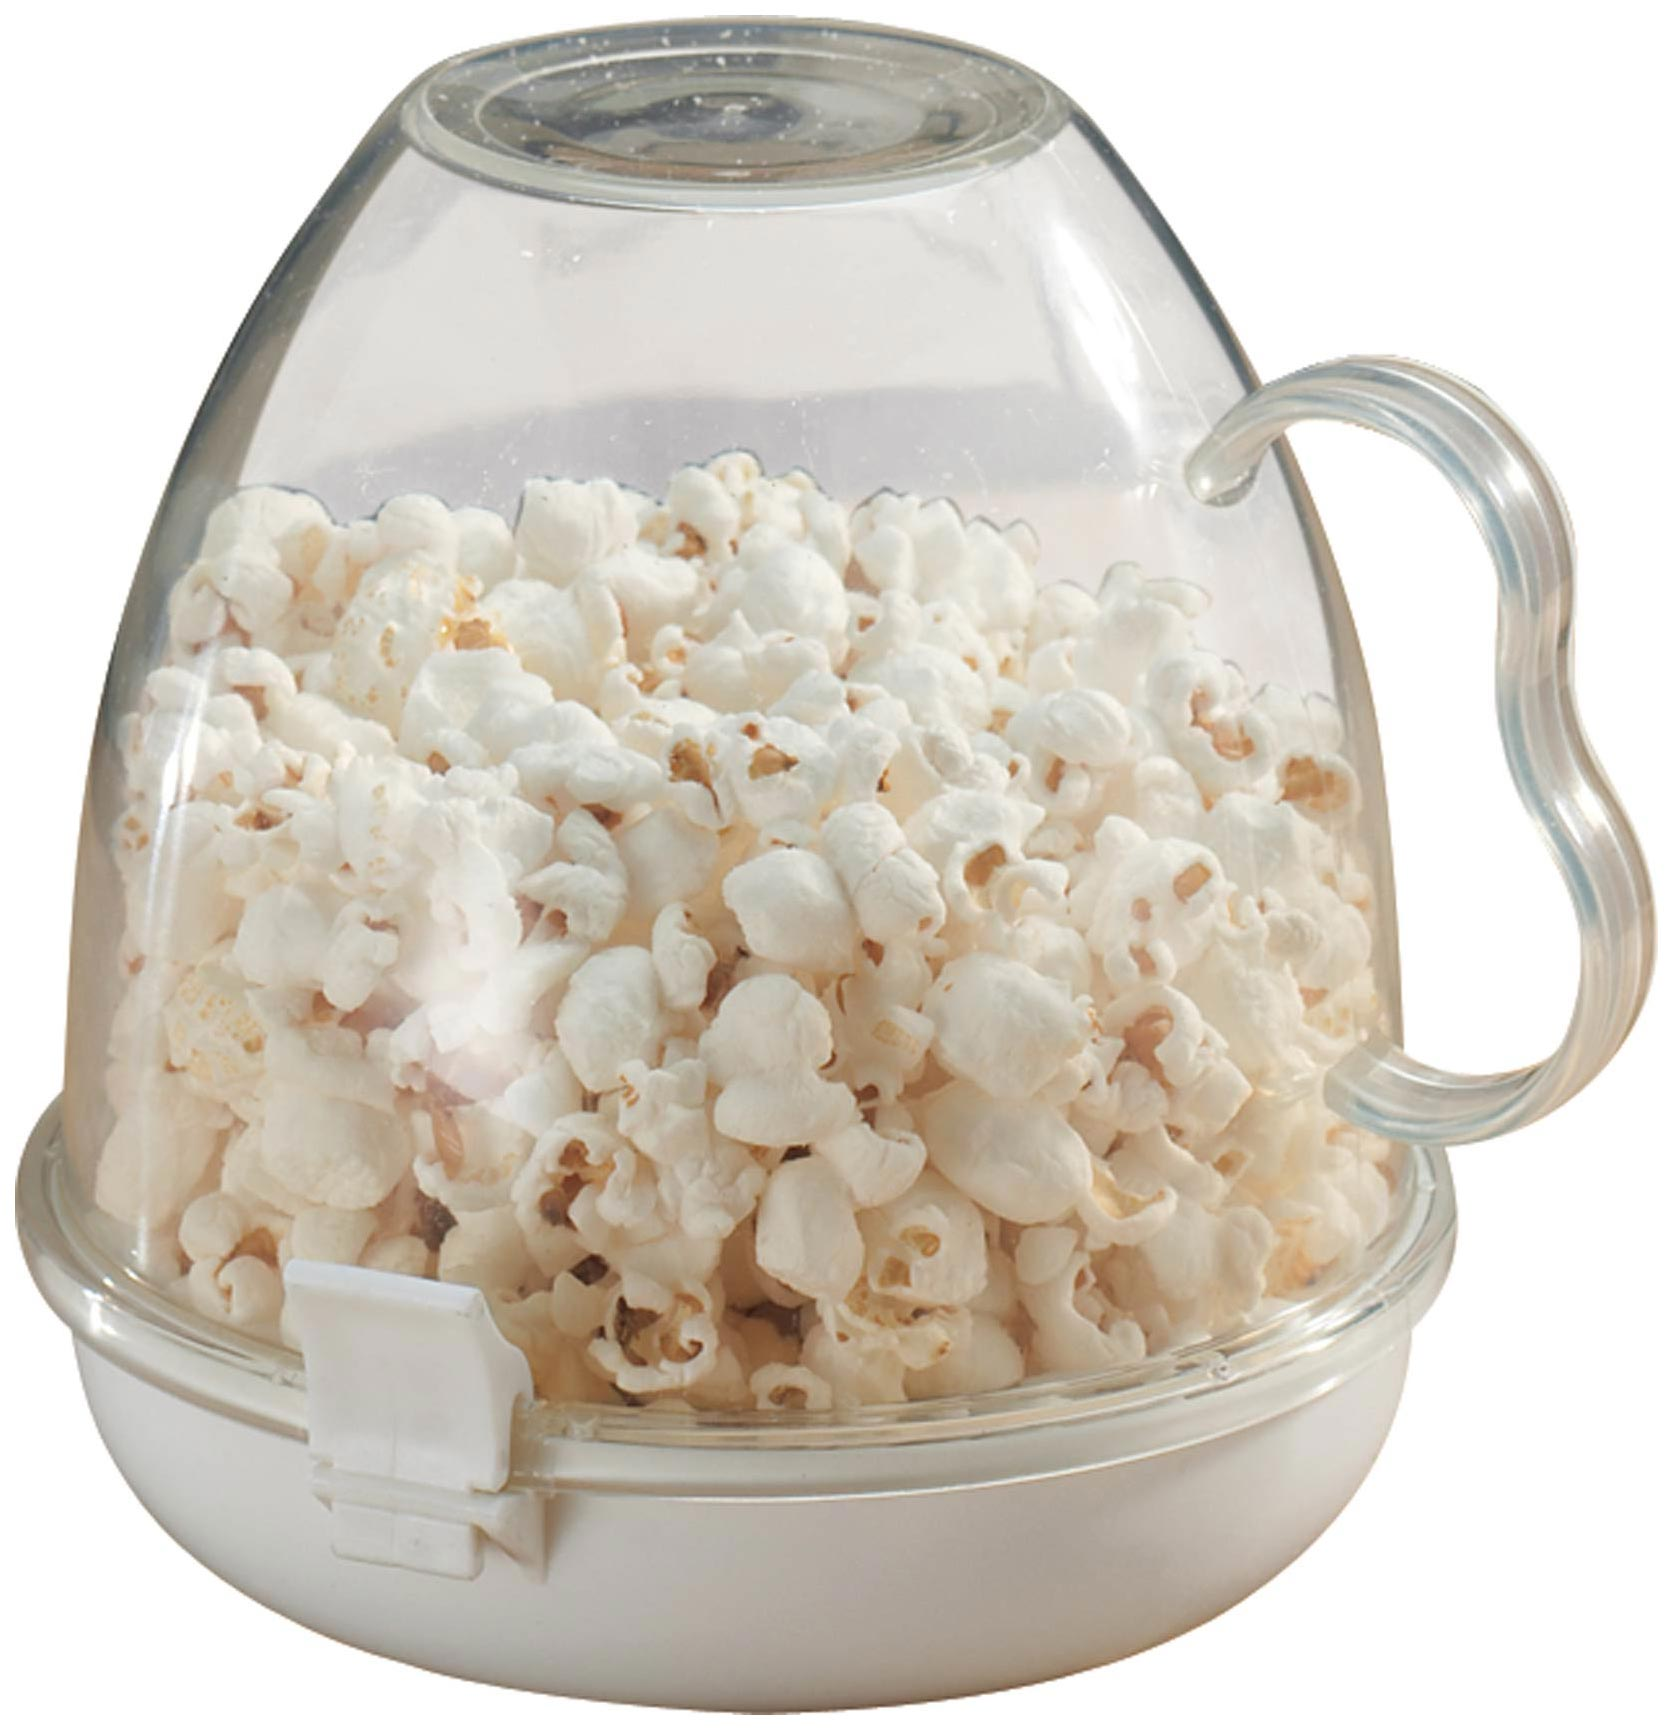 Handled Microwave Popcorn Maker